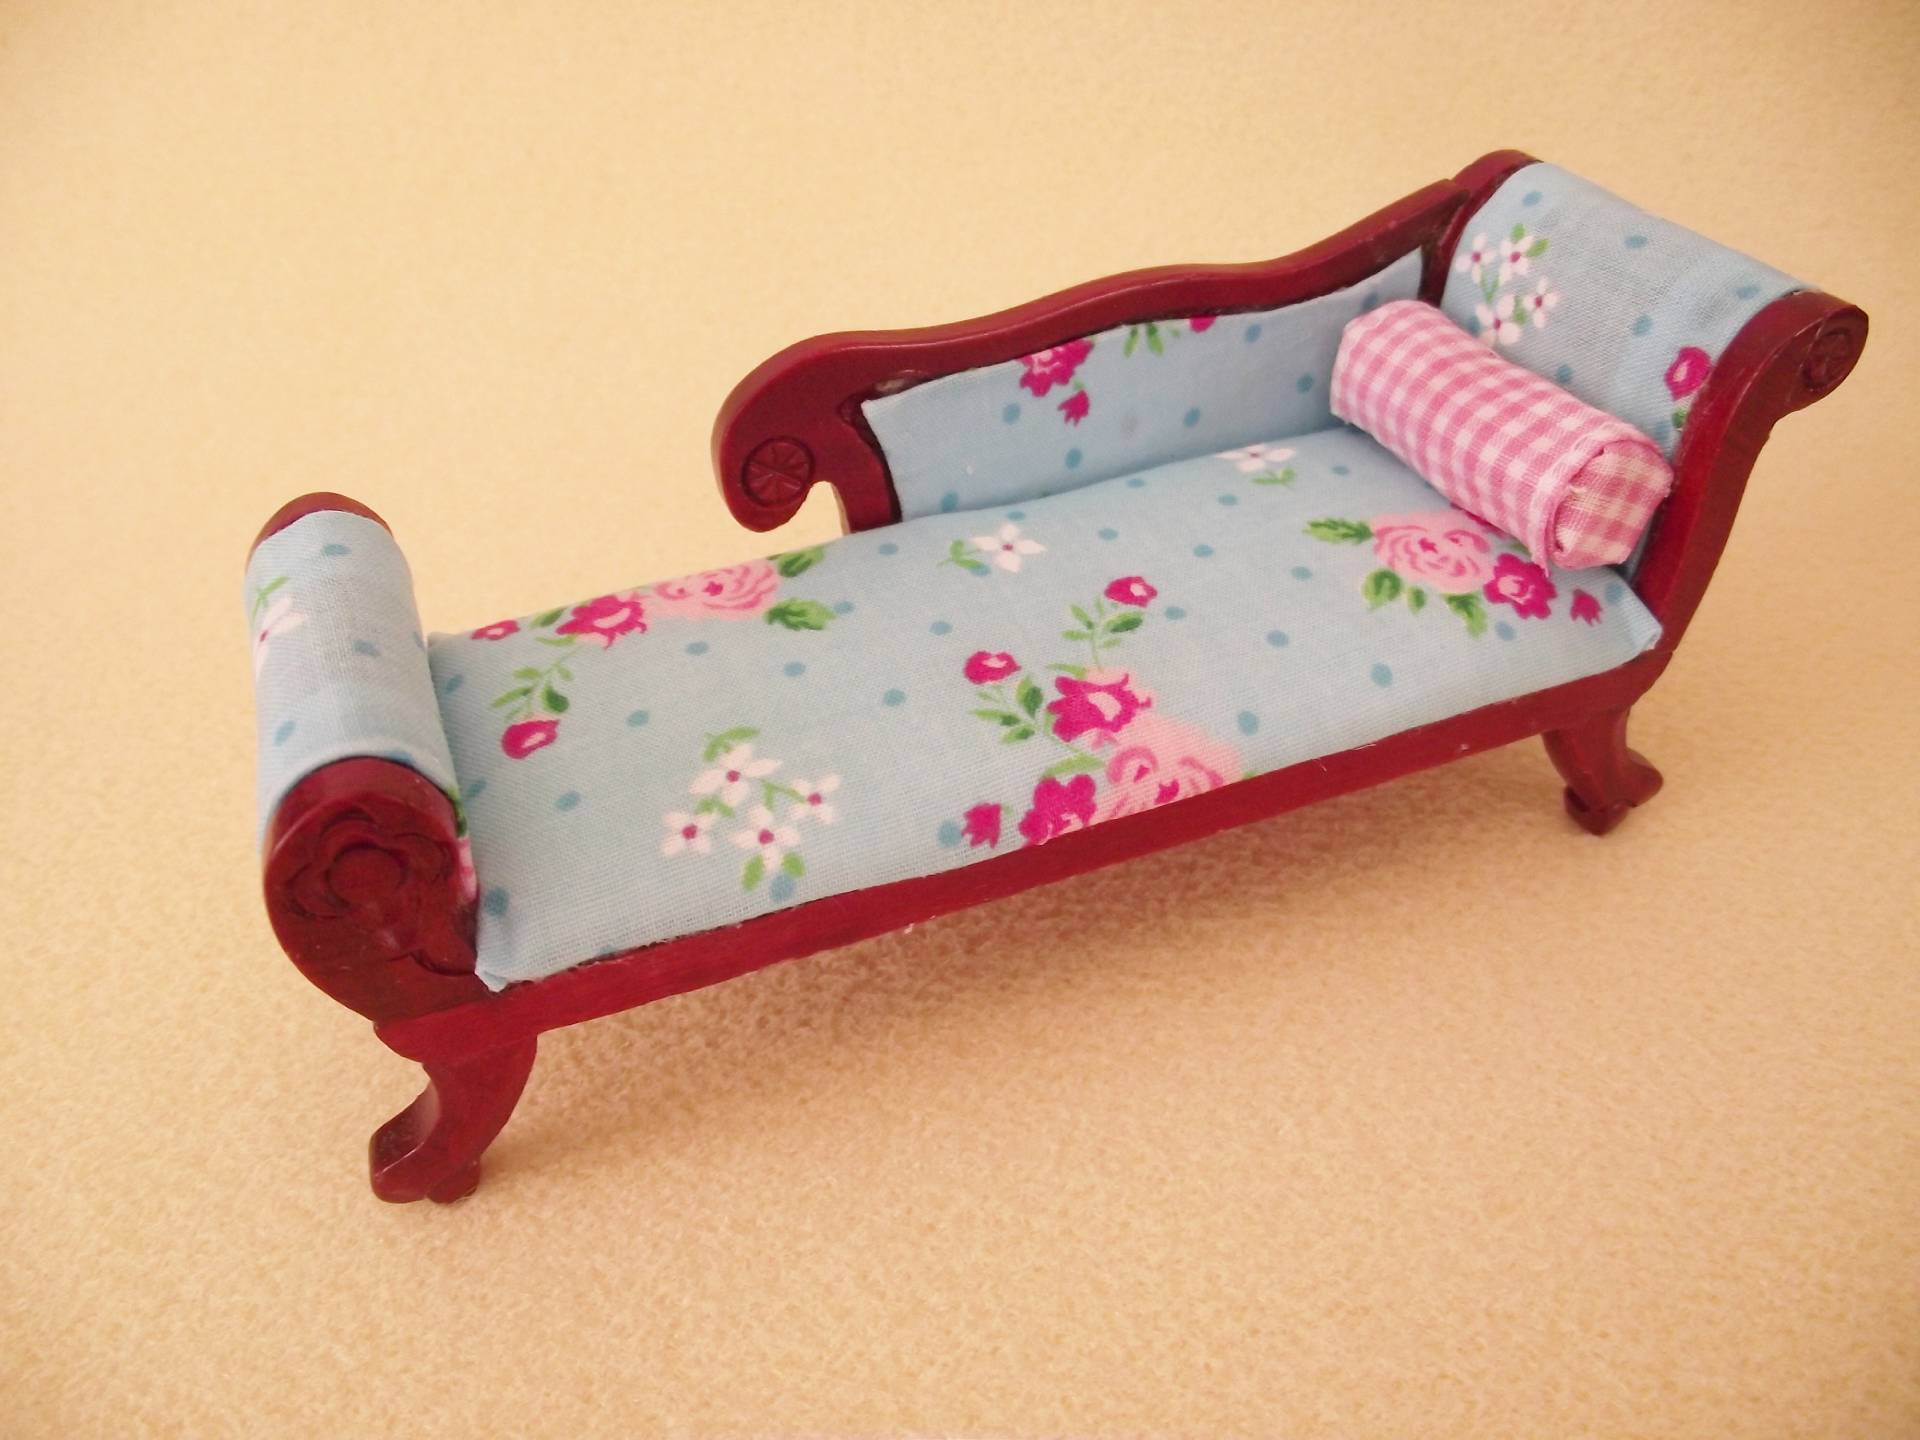 MINIATURE DOLL HOUSE 12TH SCALE WOODEN FURNITURE SHABBY CHIC CHAISE LOUNGE